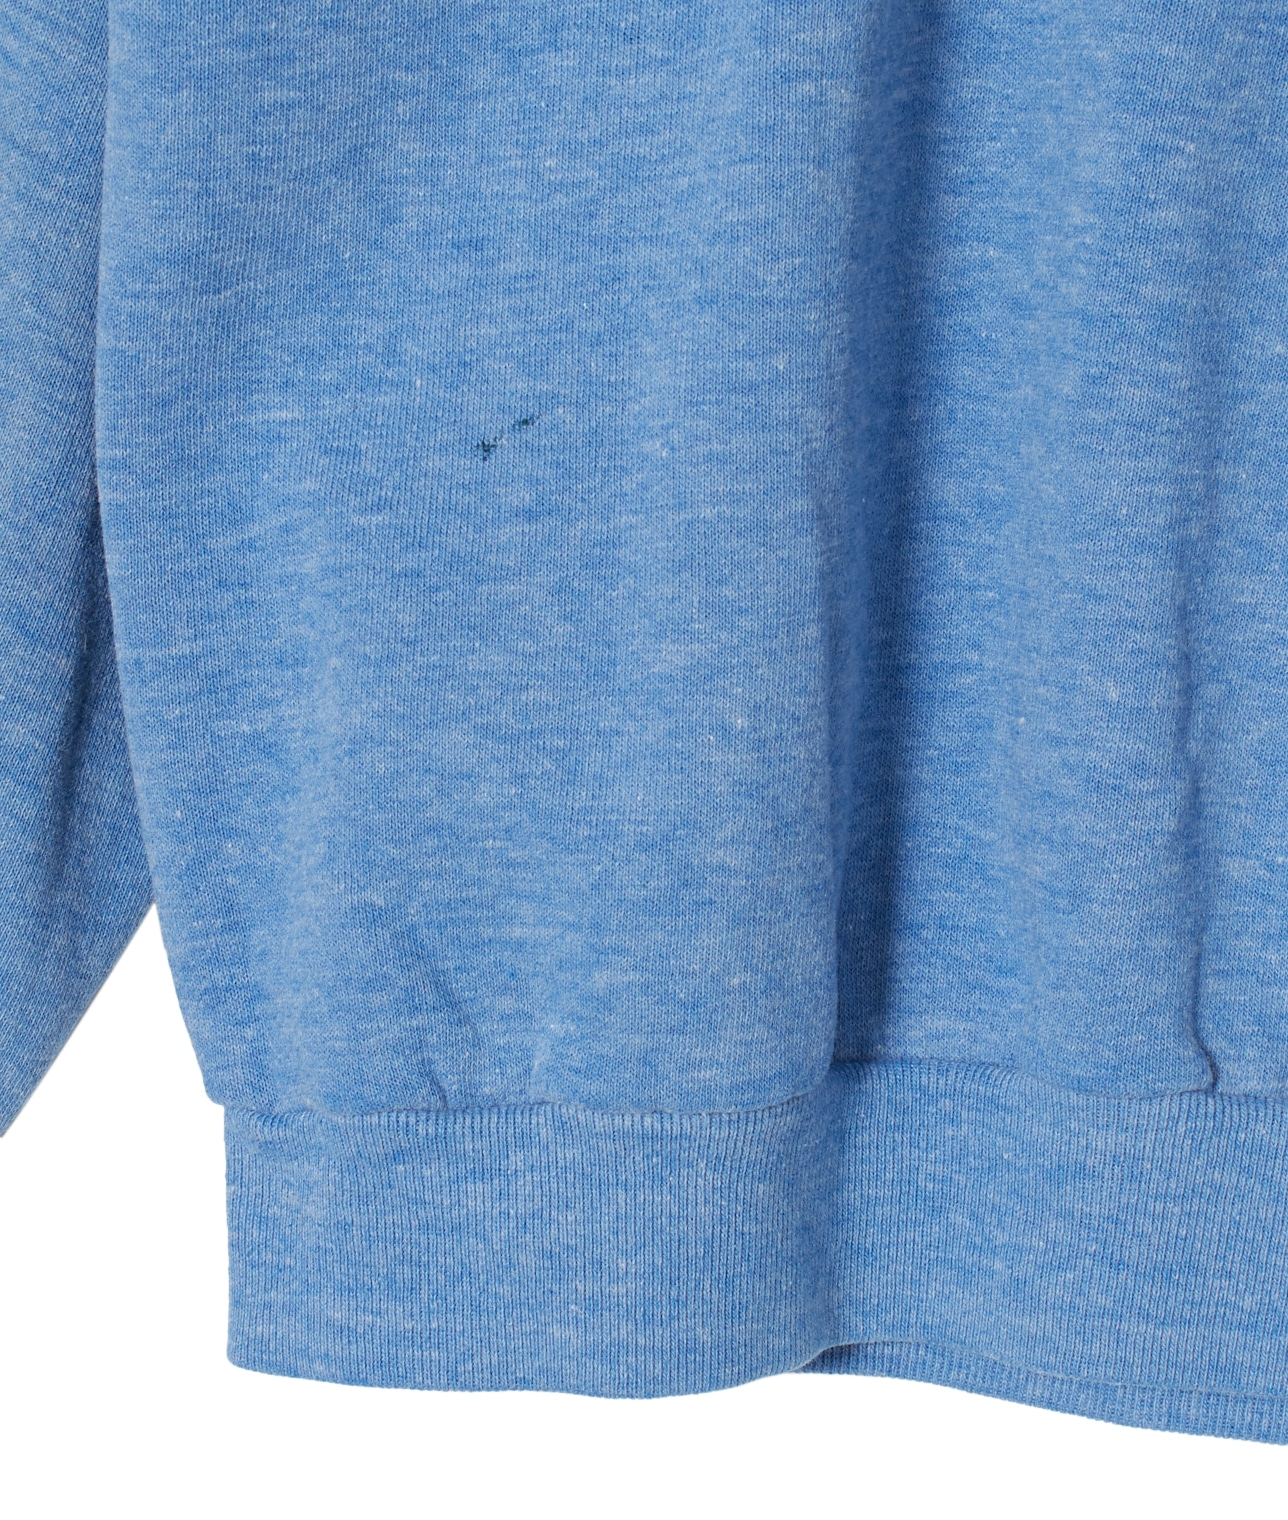 USED/UNKNOWN BRAND PLAIN SWEAT SHIRT 詳細画像 BLUE 3